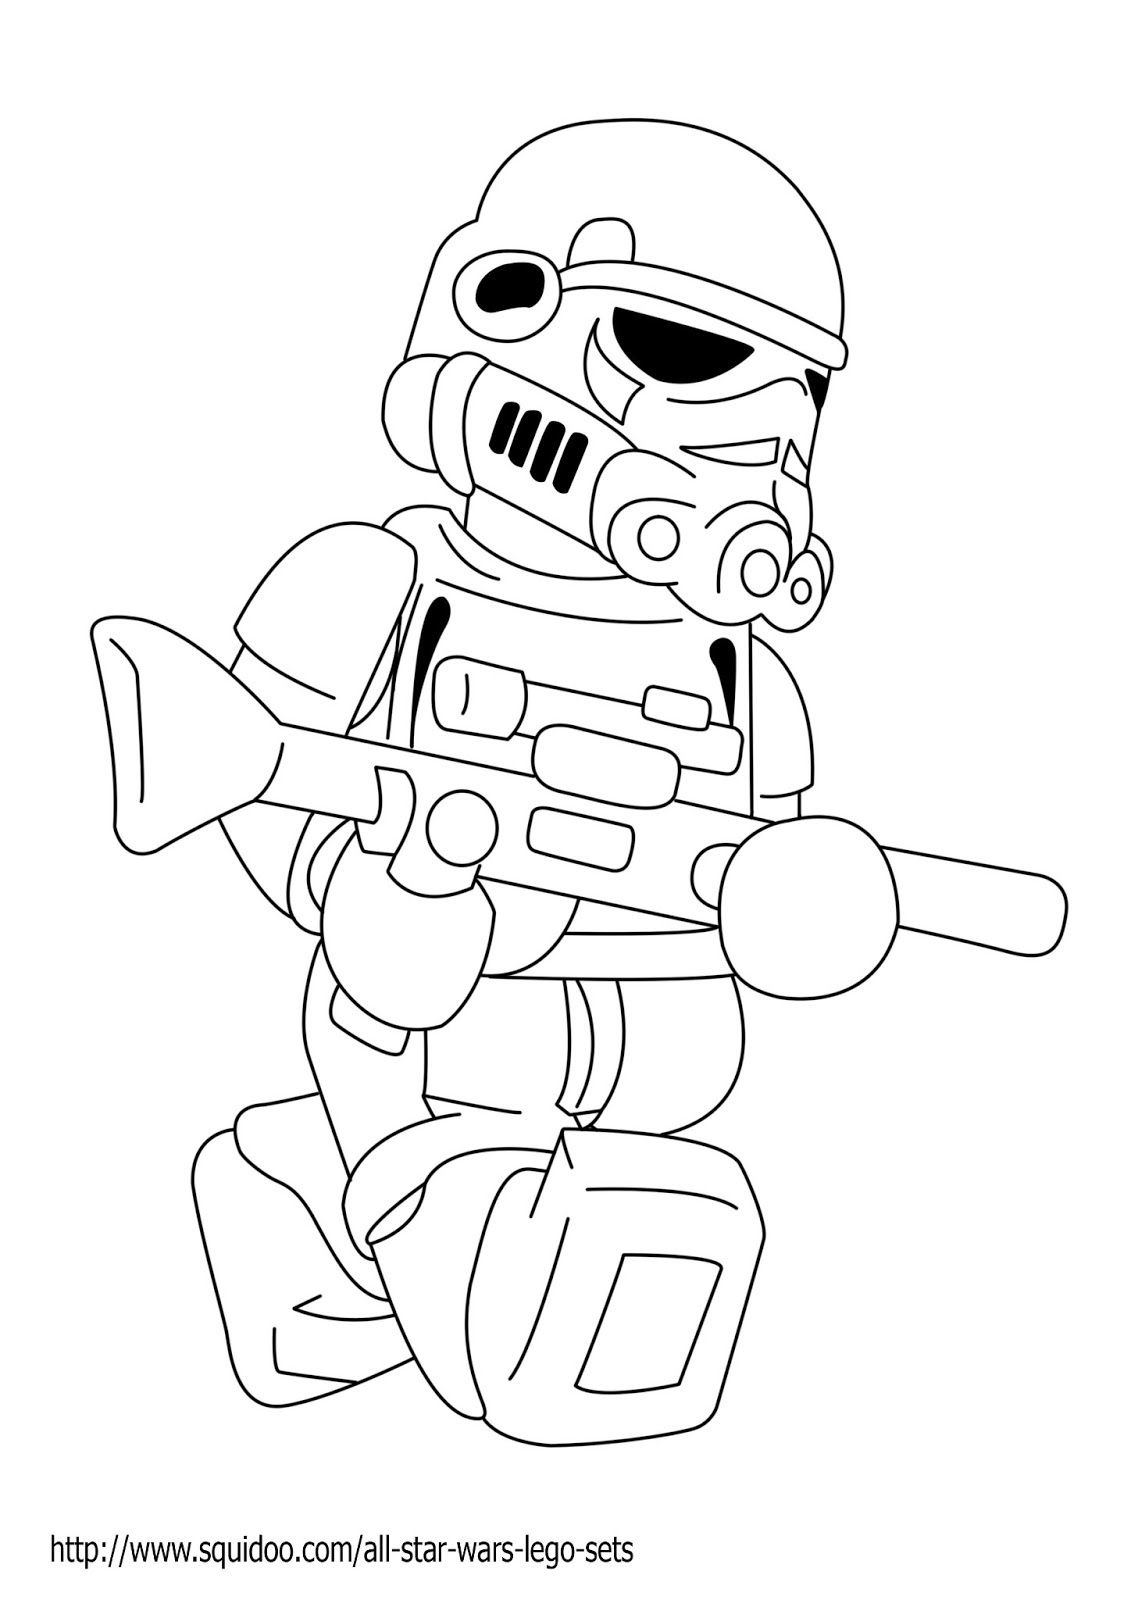 Star Wars Coloring Pages Stormtrooper Lego Star Wars Coloring